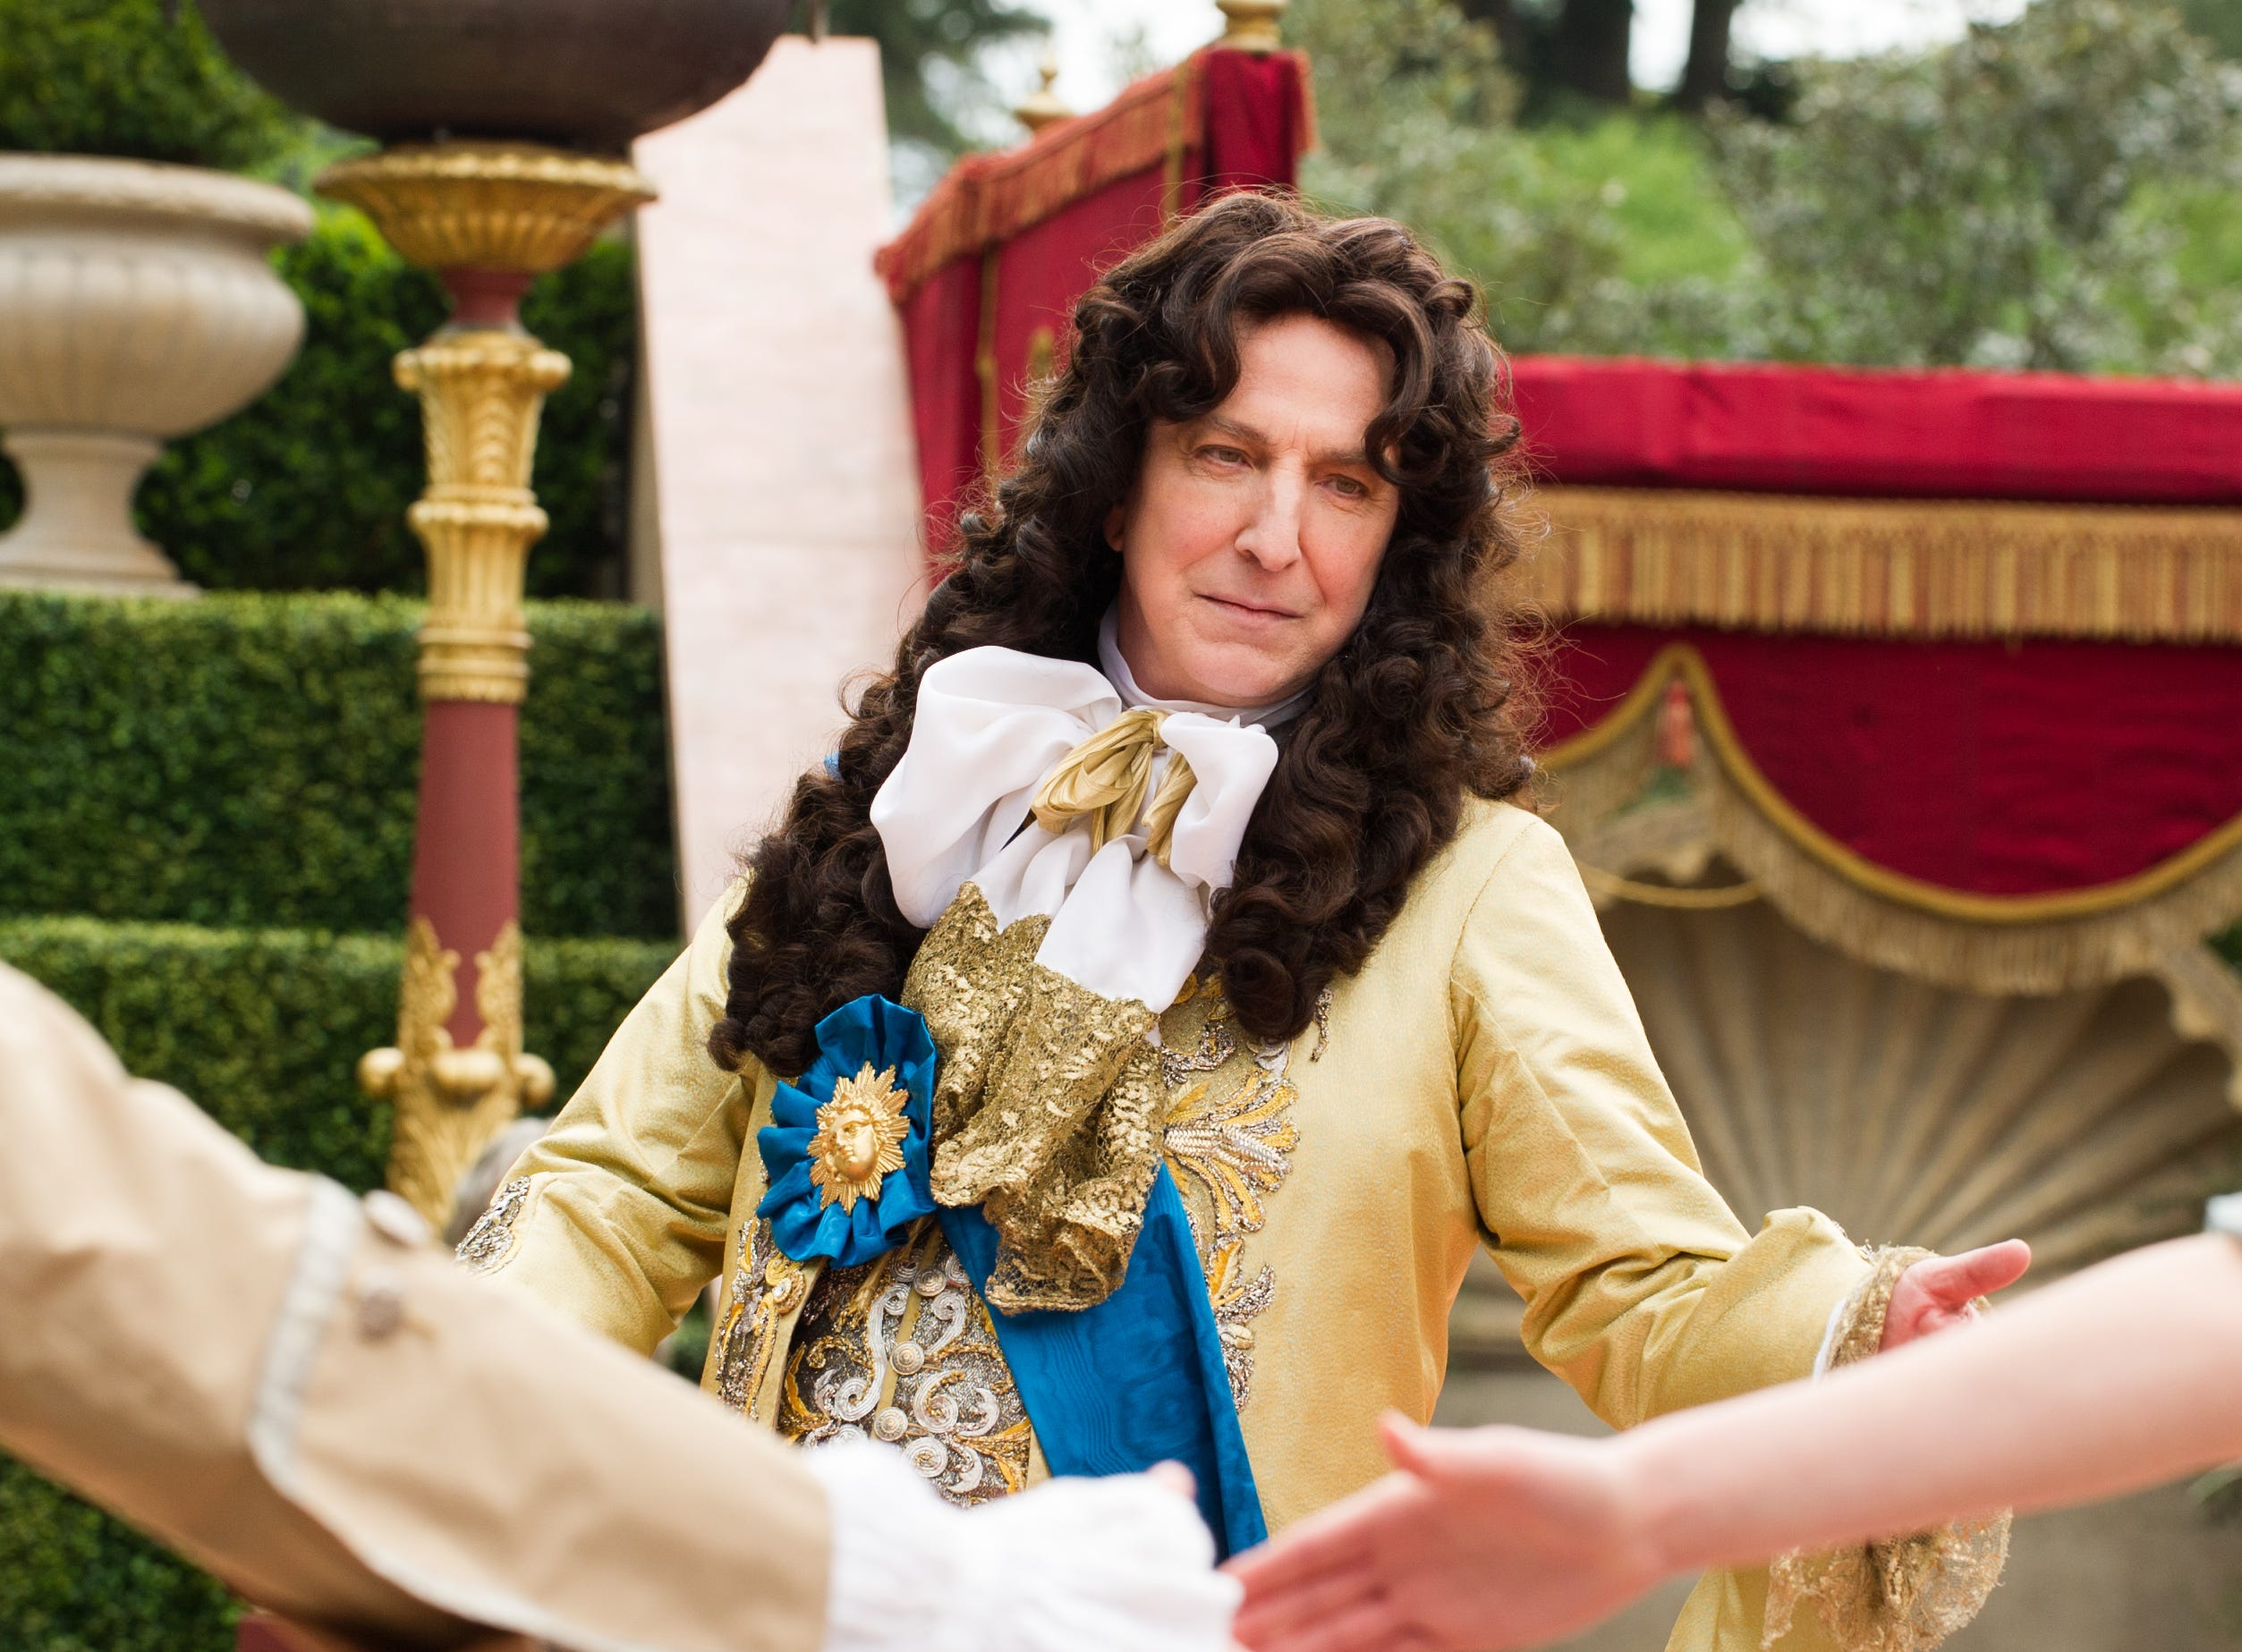 """Alan Rickman played France's King Louis XIV in film """"A Little Chaos,"""" which he also directed. He died in 2016."""